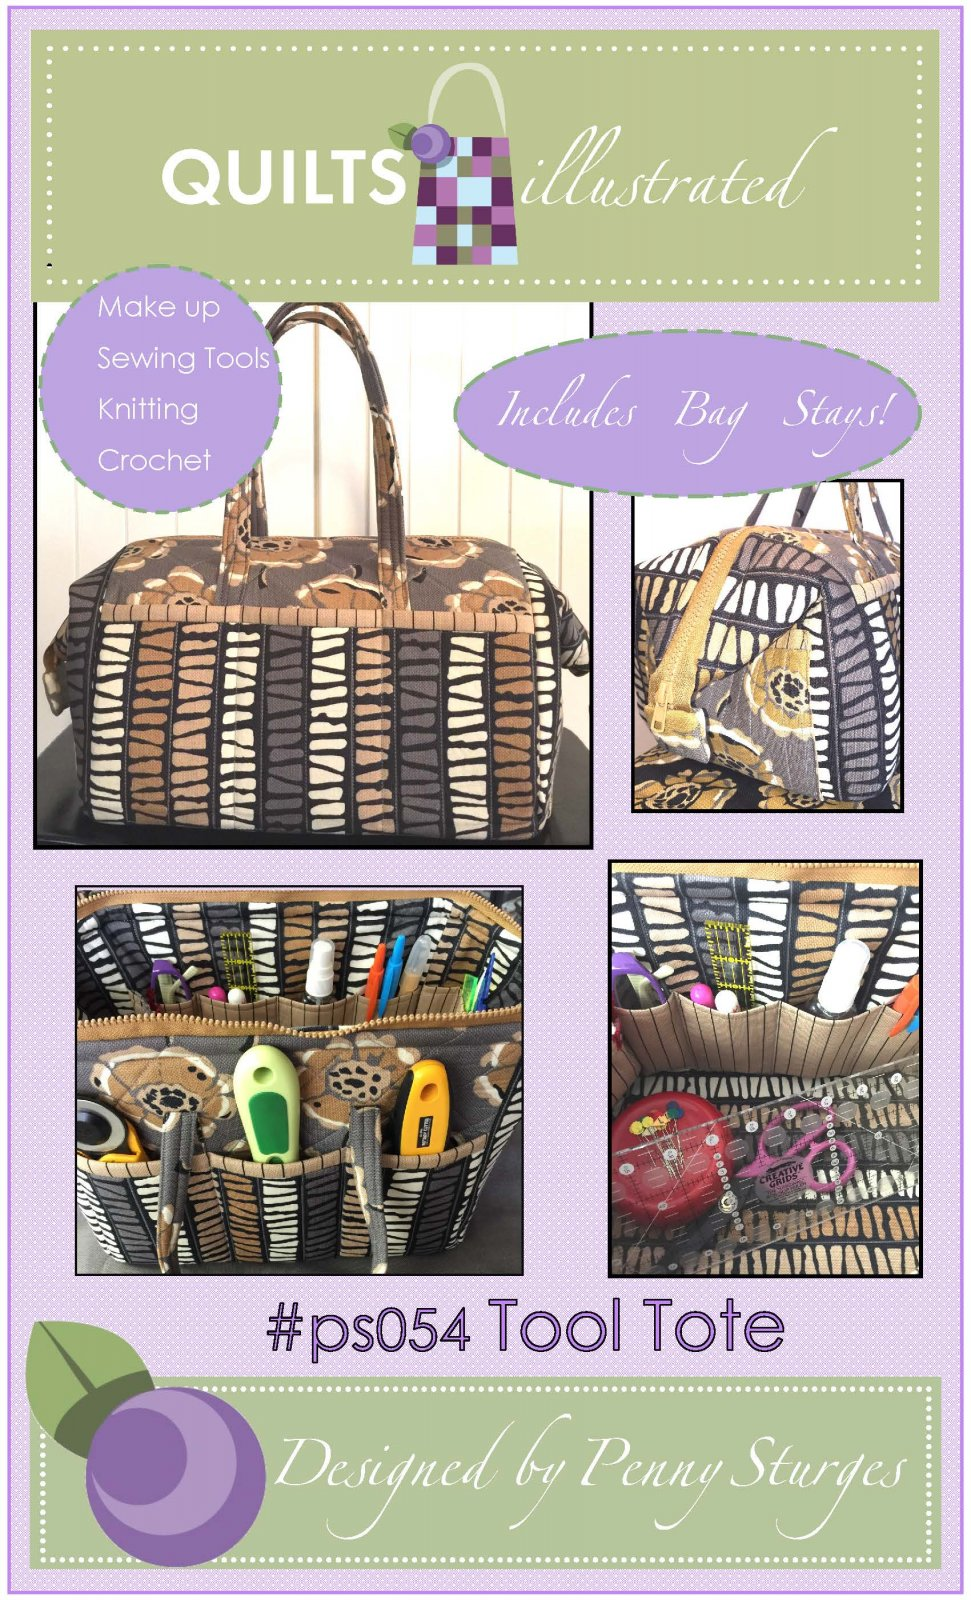 ps054 Tool Tote pattern